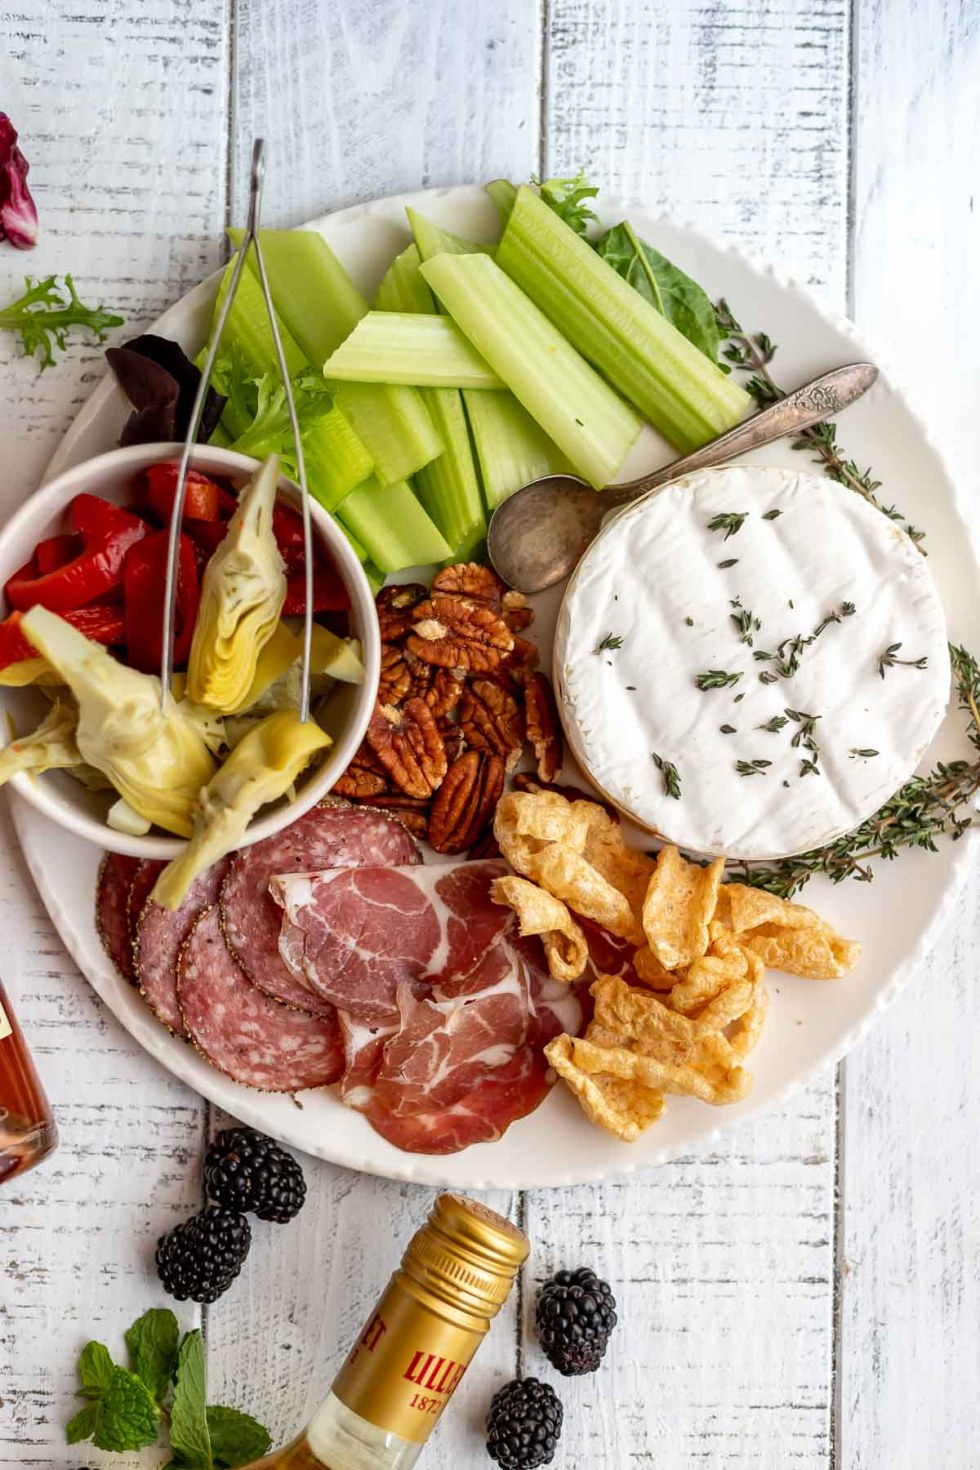 charcuterie board with brie, meat, pork rinds and artichoke hearts